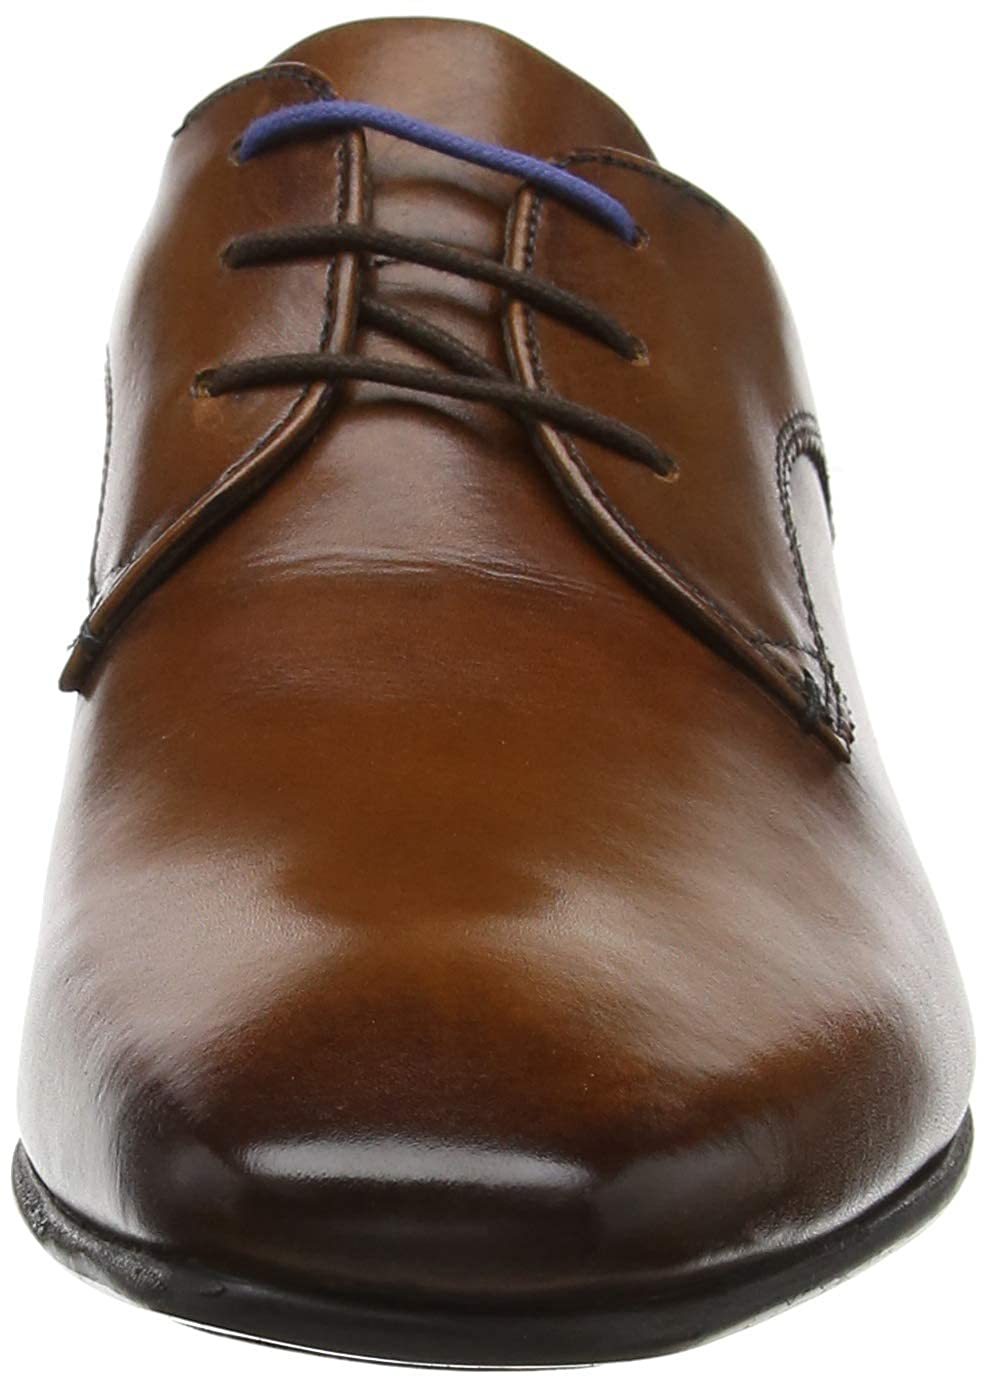 Ted Baker Mens Tifir Leather Lace Up Formal Shoe Tan - citwebdev ... 6b3e2c1a1a67